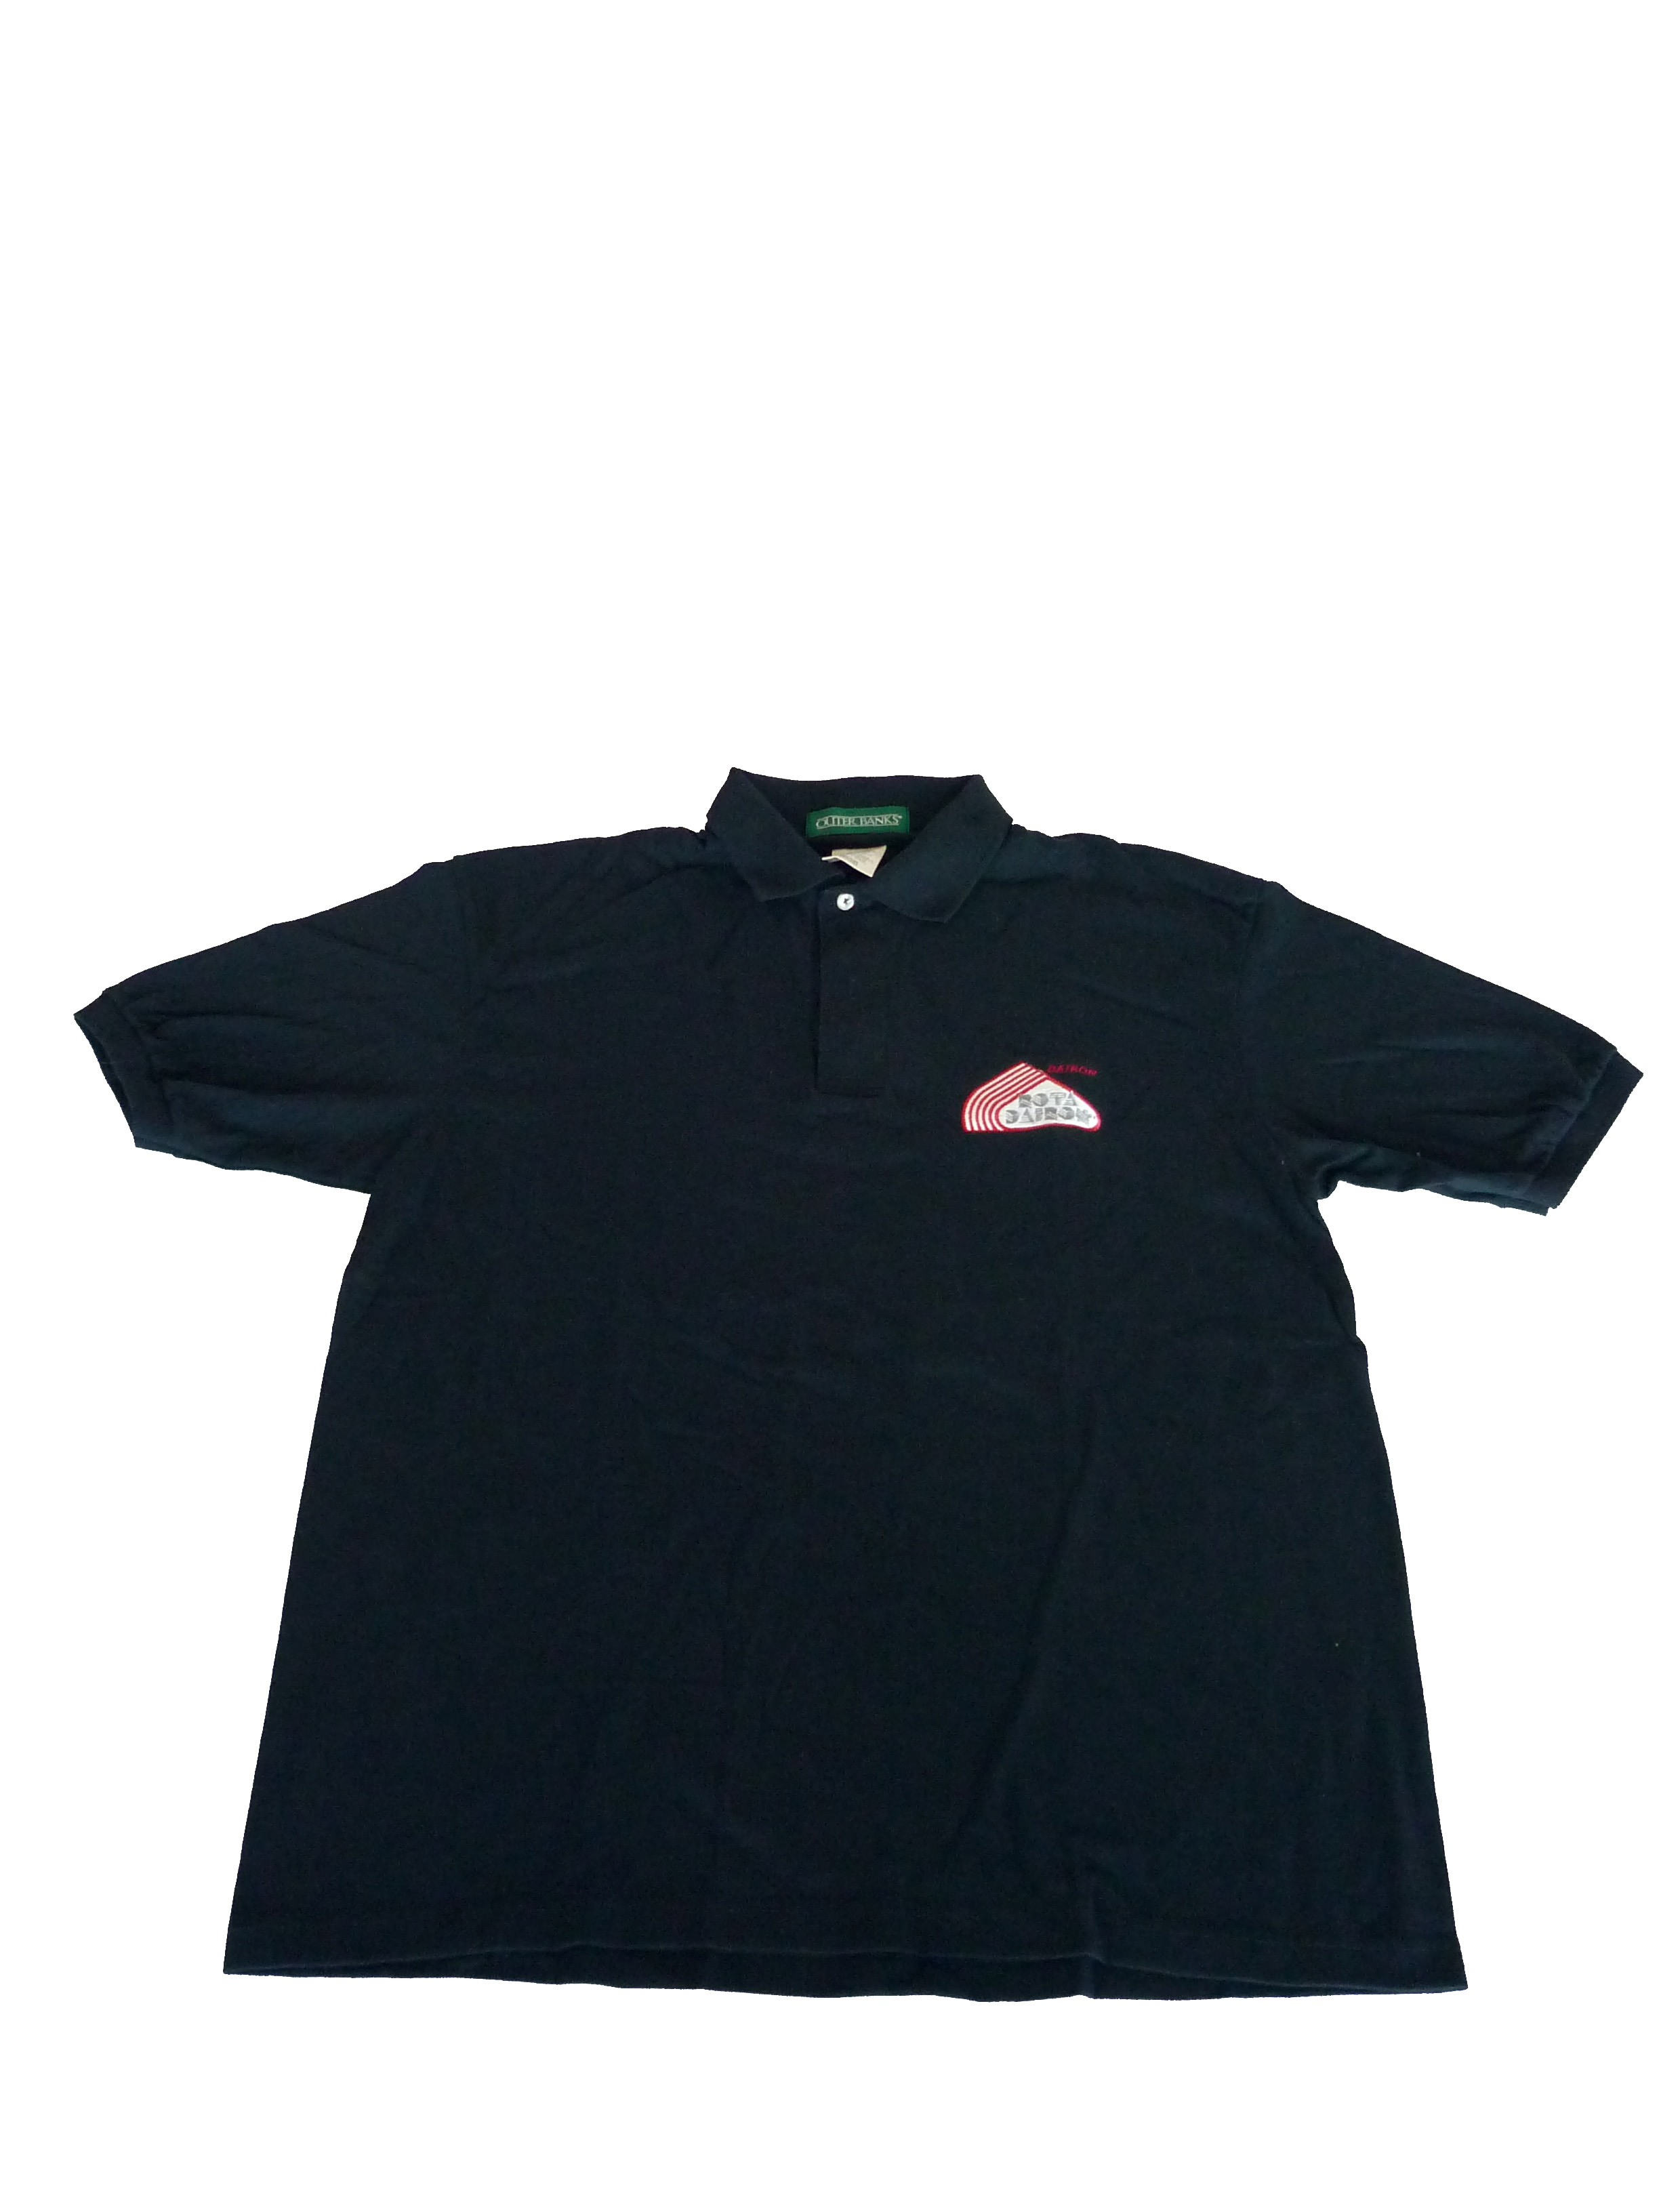 Black RotaDairon polo shirt - view from the top